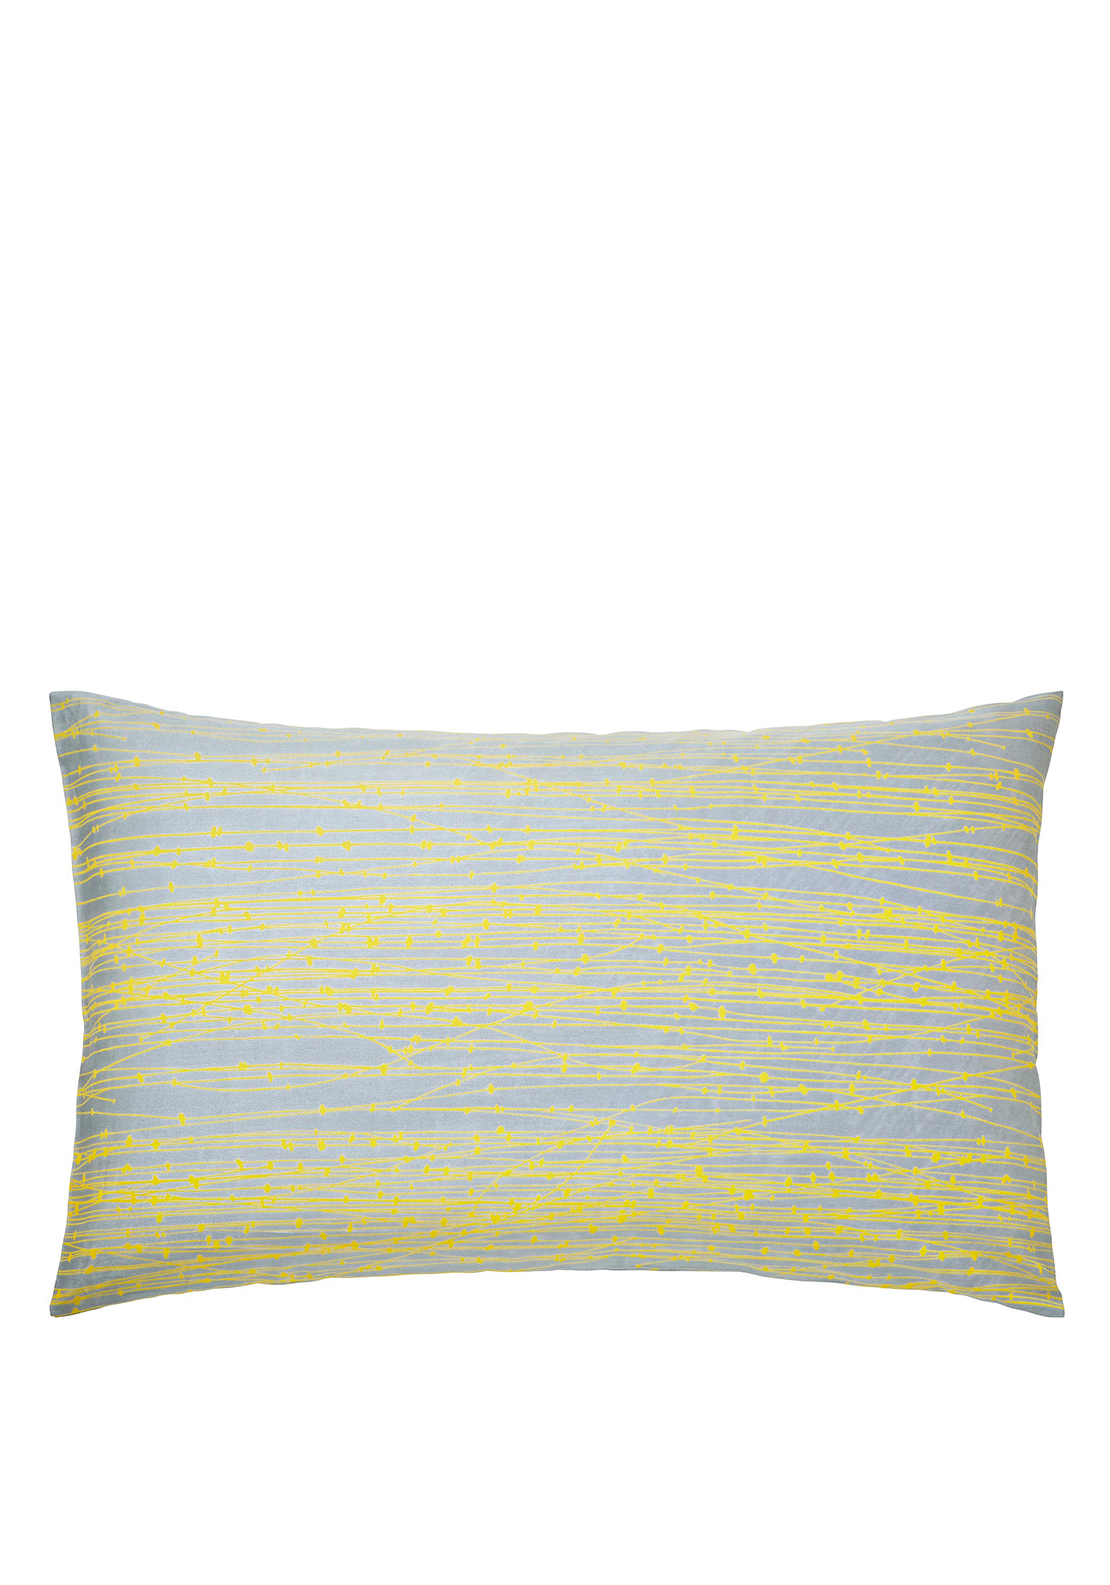 Clarissa Hulse Meadow Grass Pillow Case